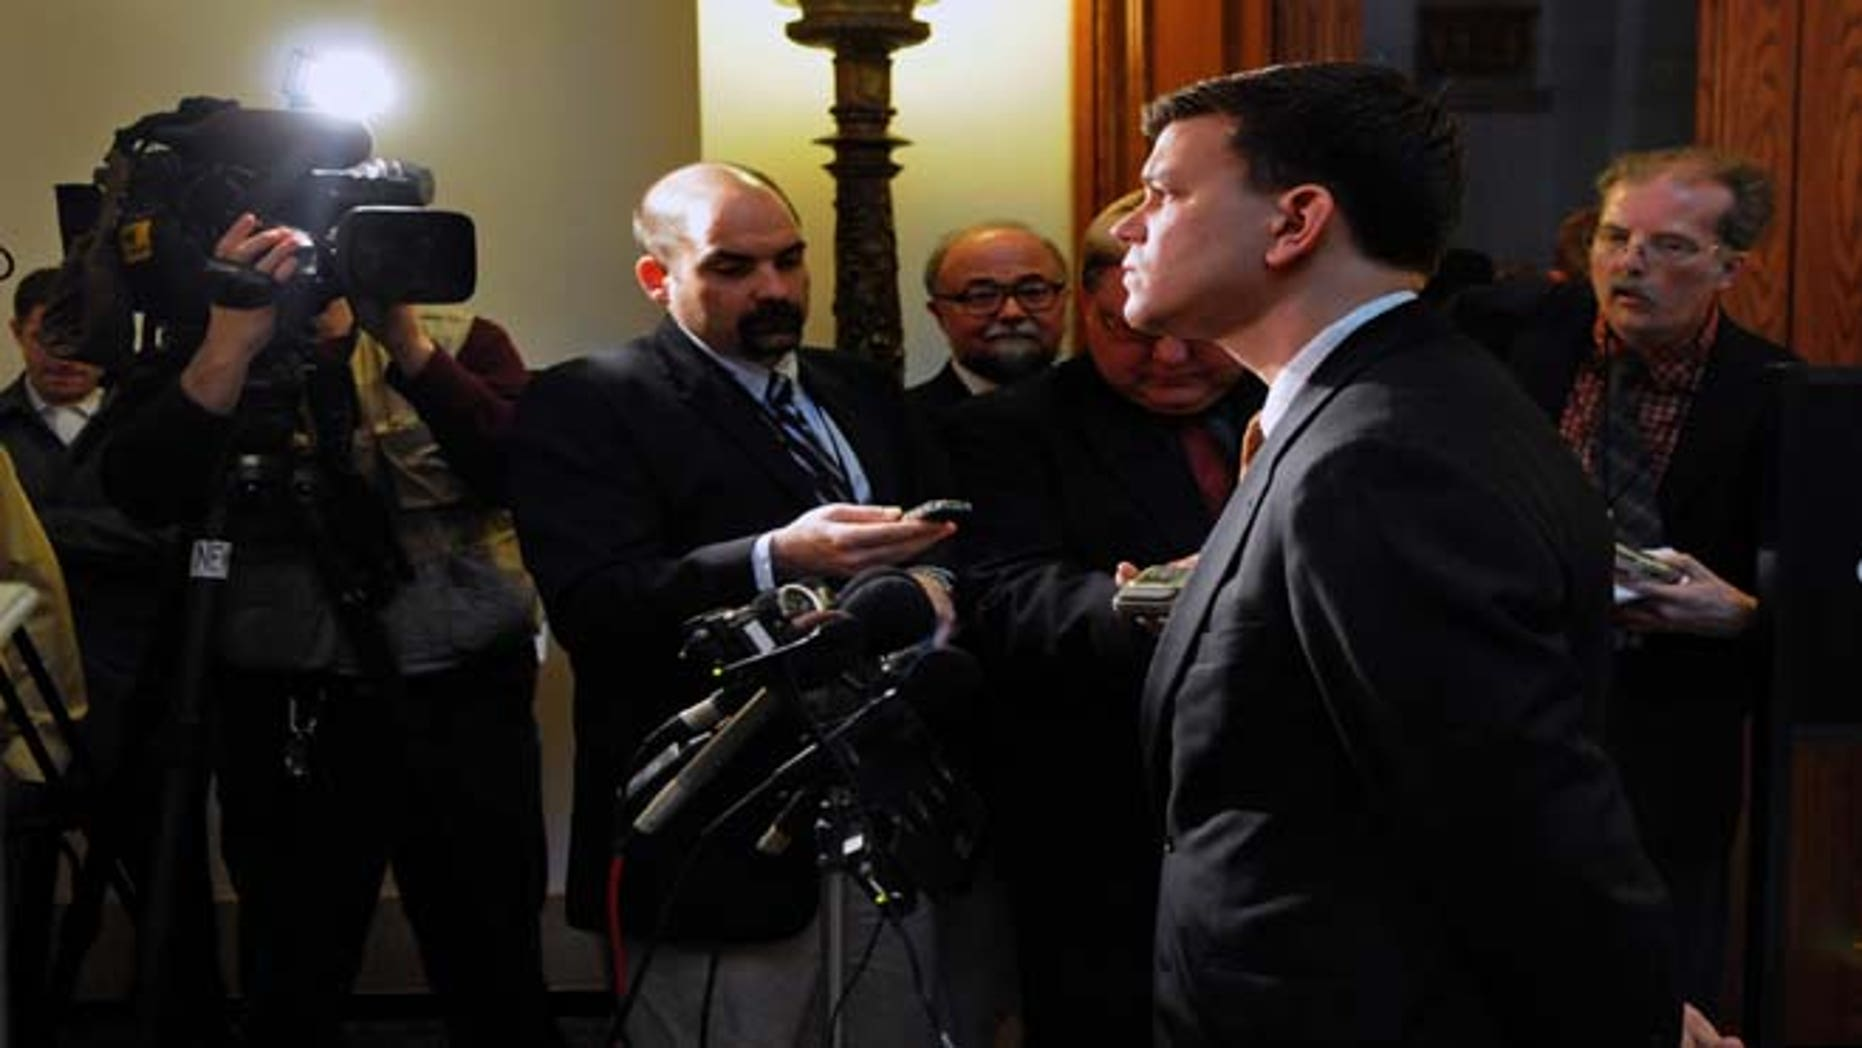 """In this March 15, 2010, file photo Minnesota Rep. Ryan Winkler, D-Golden Valley, talks to the press in St Paul, Minn. Winkler apologized swiftly Tuesday, June 25, 2013, for a tweet he sent that referred to Supreme Court Justice Clarence Thomas as """"Uncle Thomas"""" following a major ruling on the nation's landmark voting rights law."""